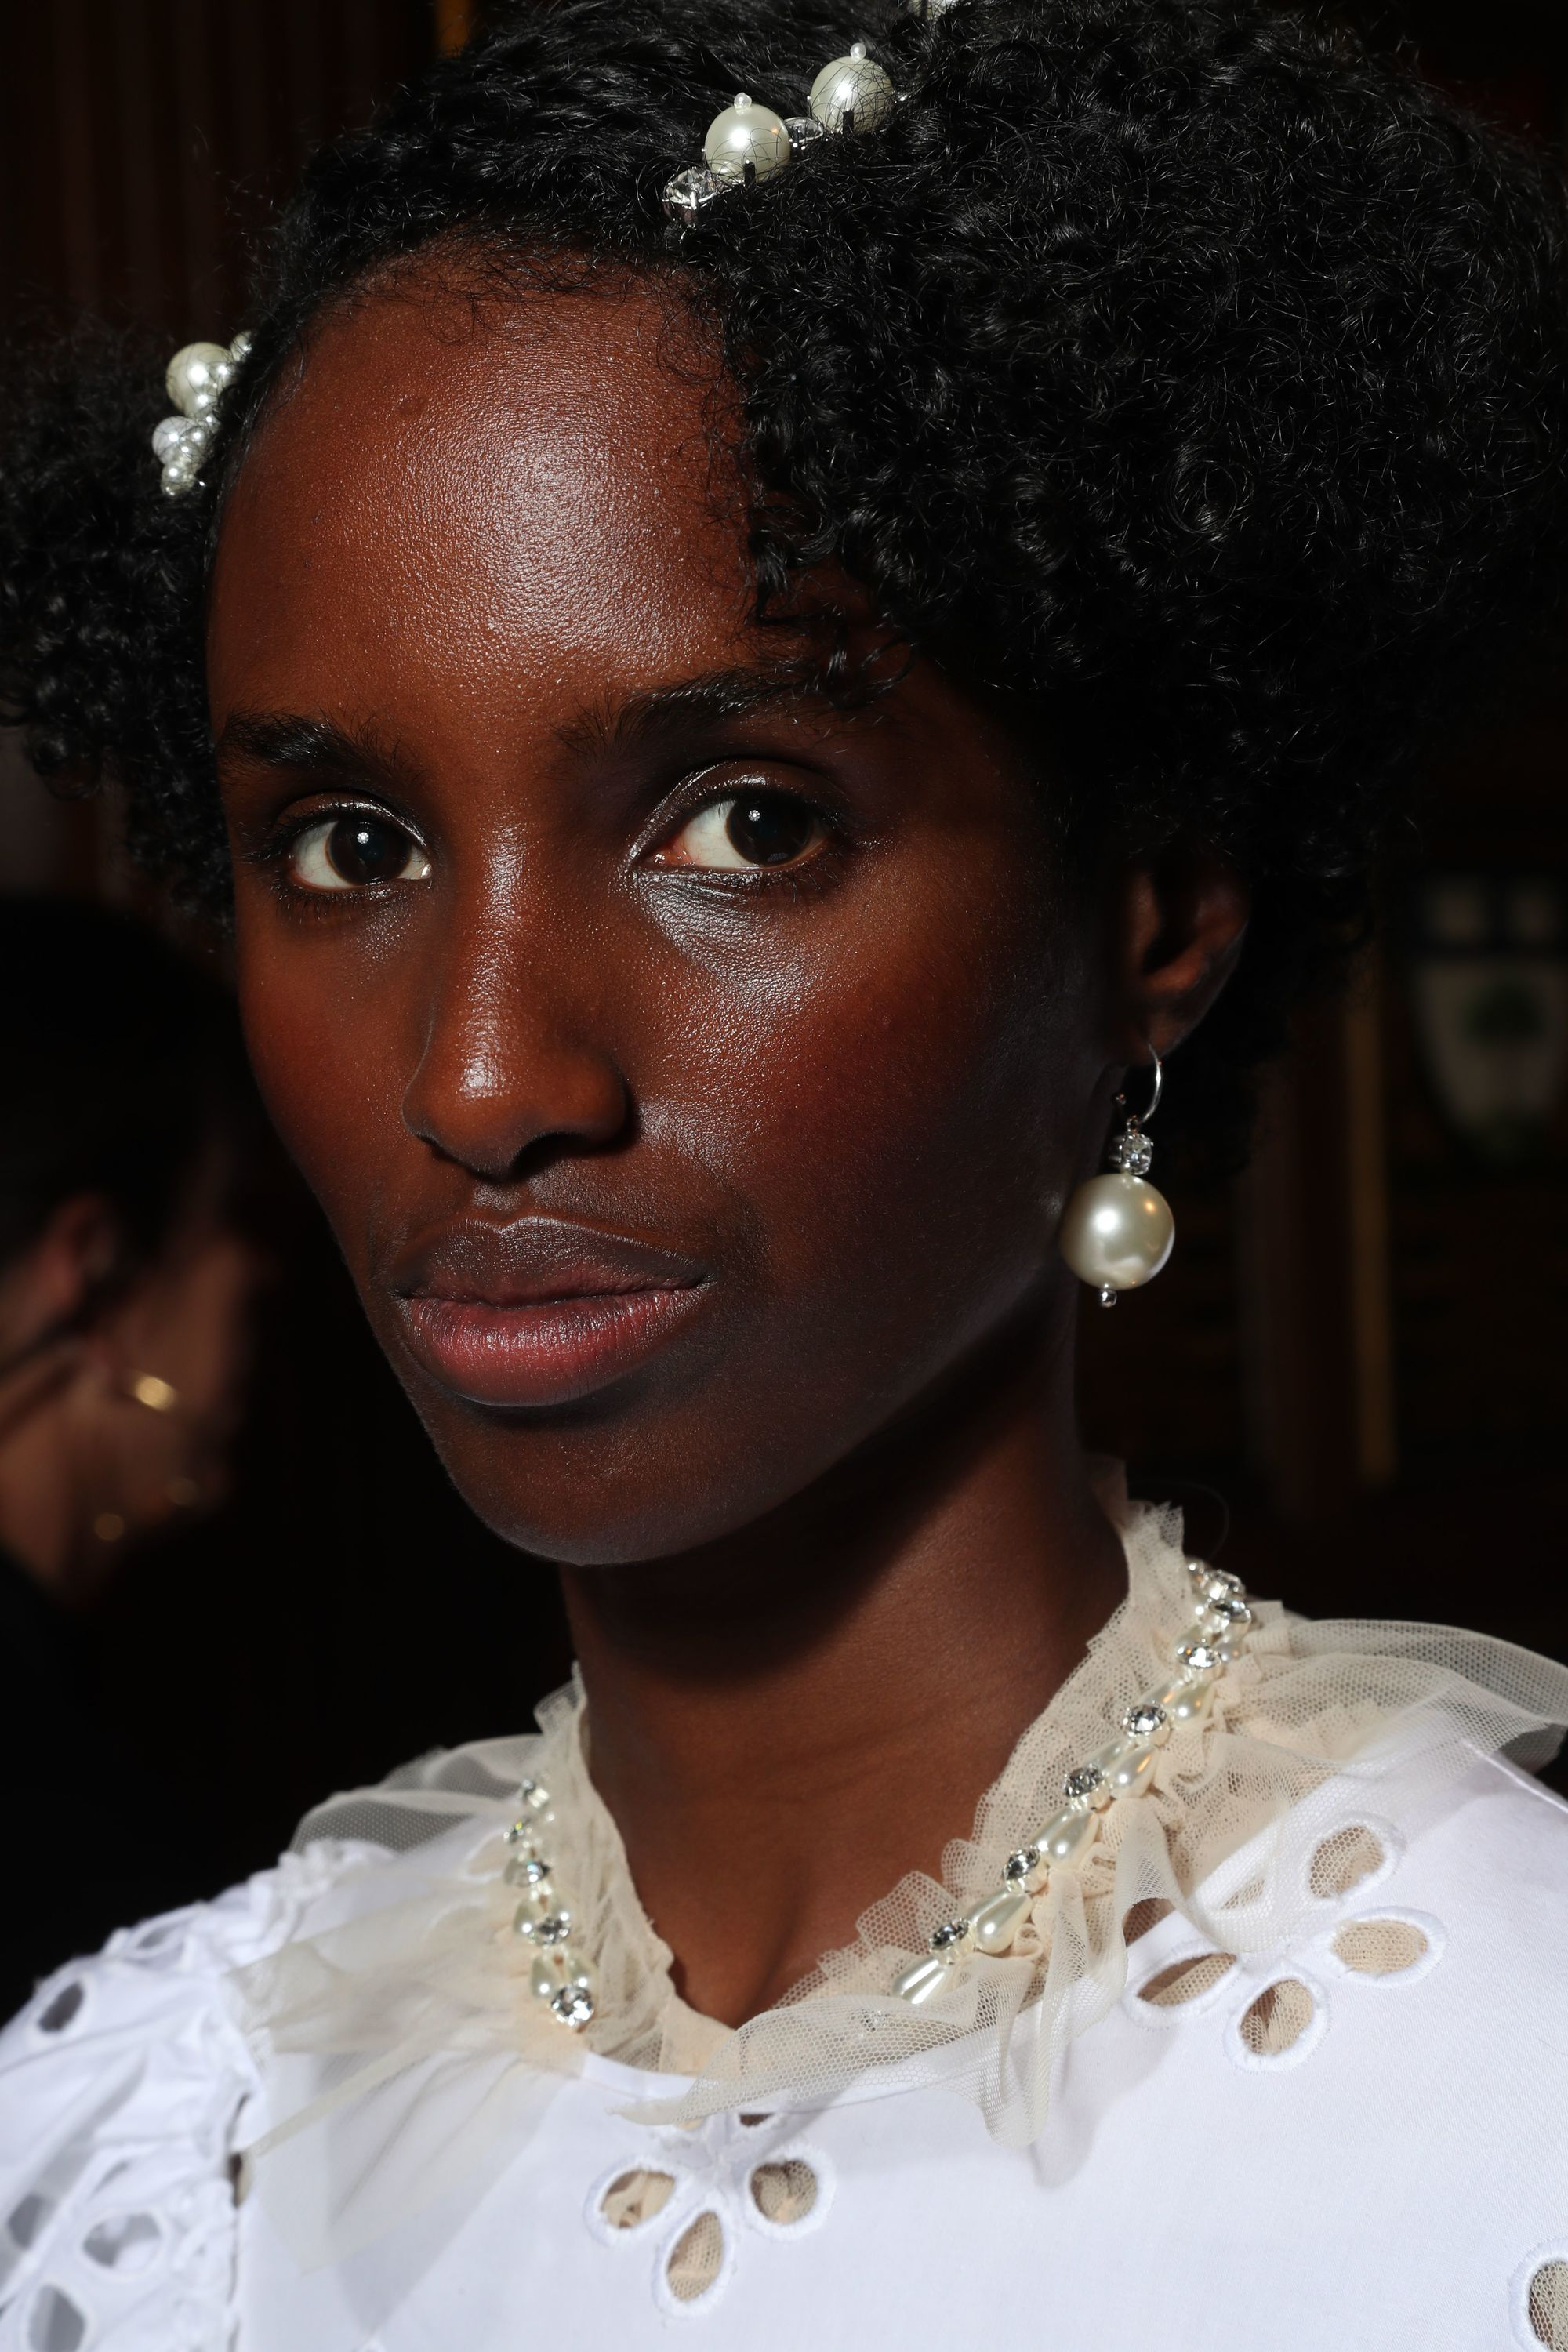 close up shot of model with natural hair with pearl hair slides in it, wearing white lace and posing backstage